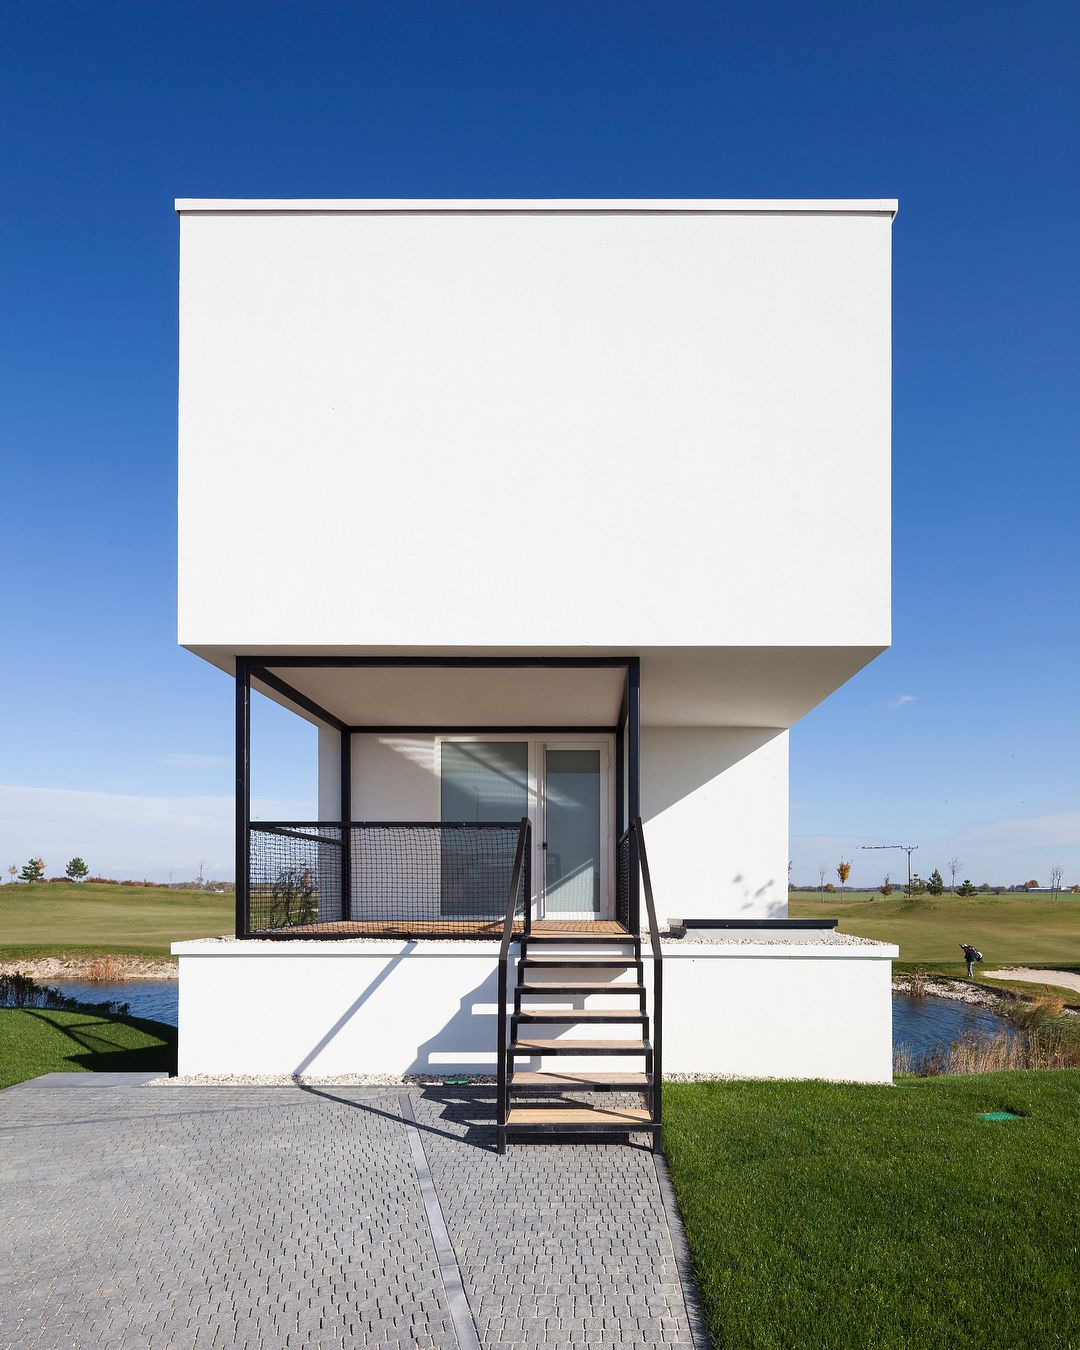 What Do You Think!? Leave Your Comment. 3×3 Family Houses